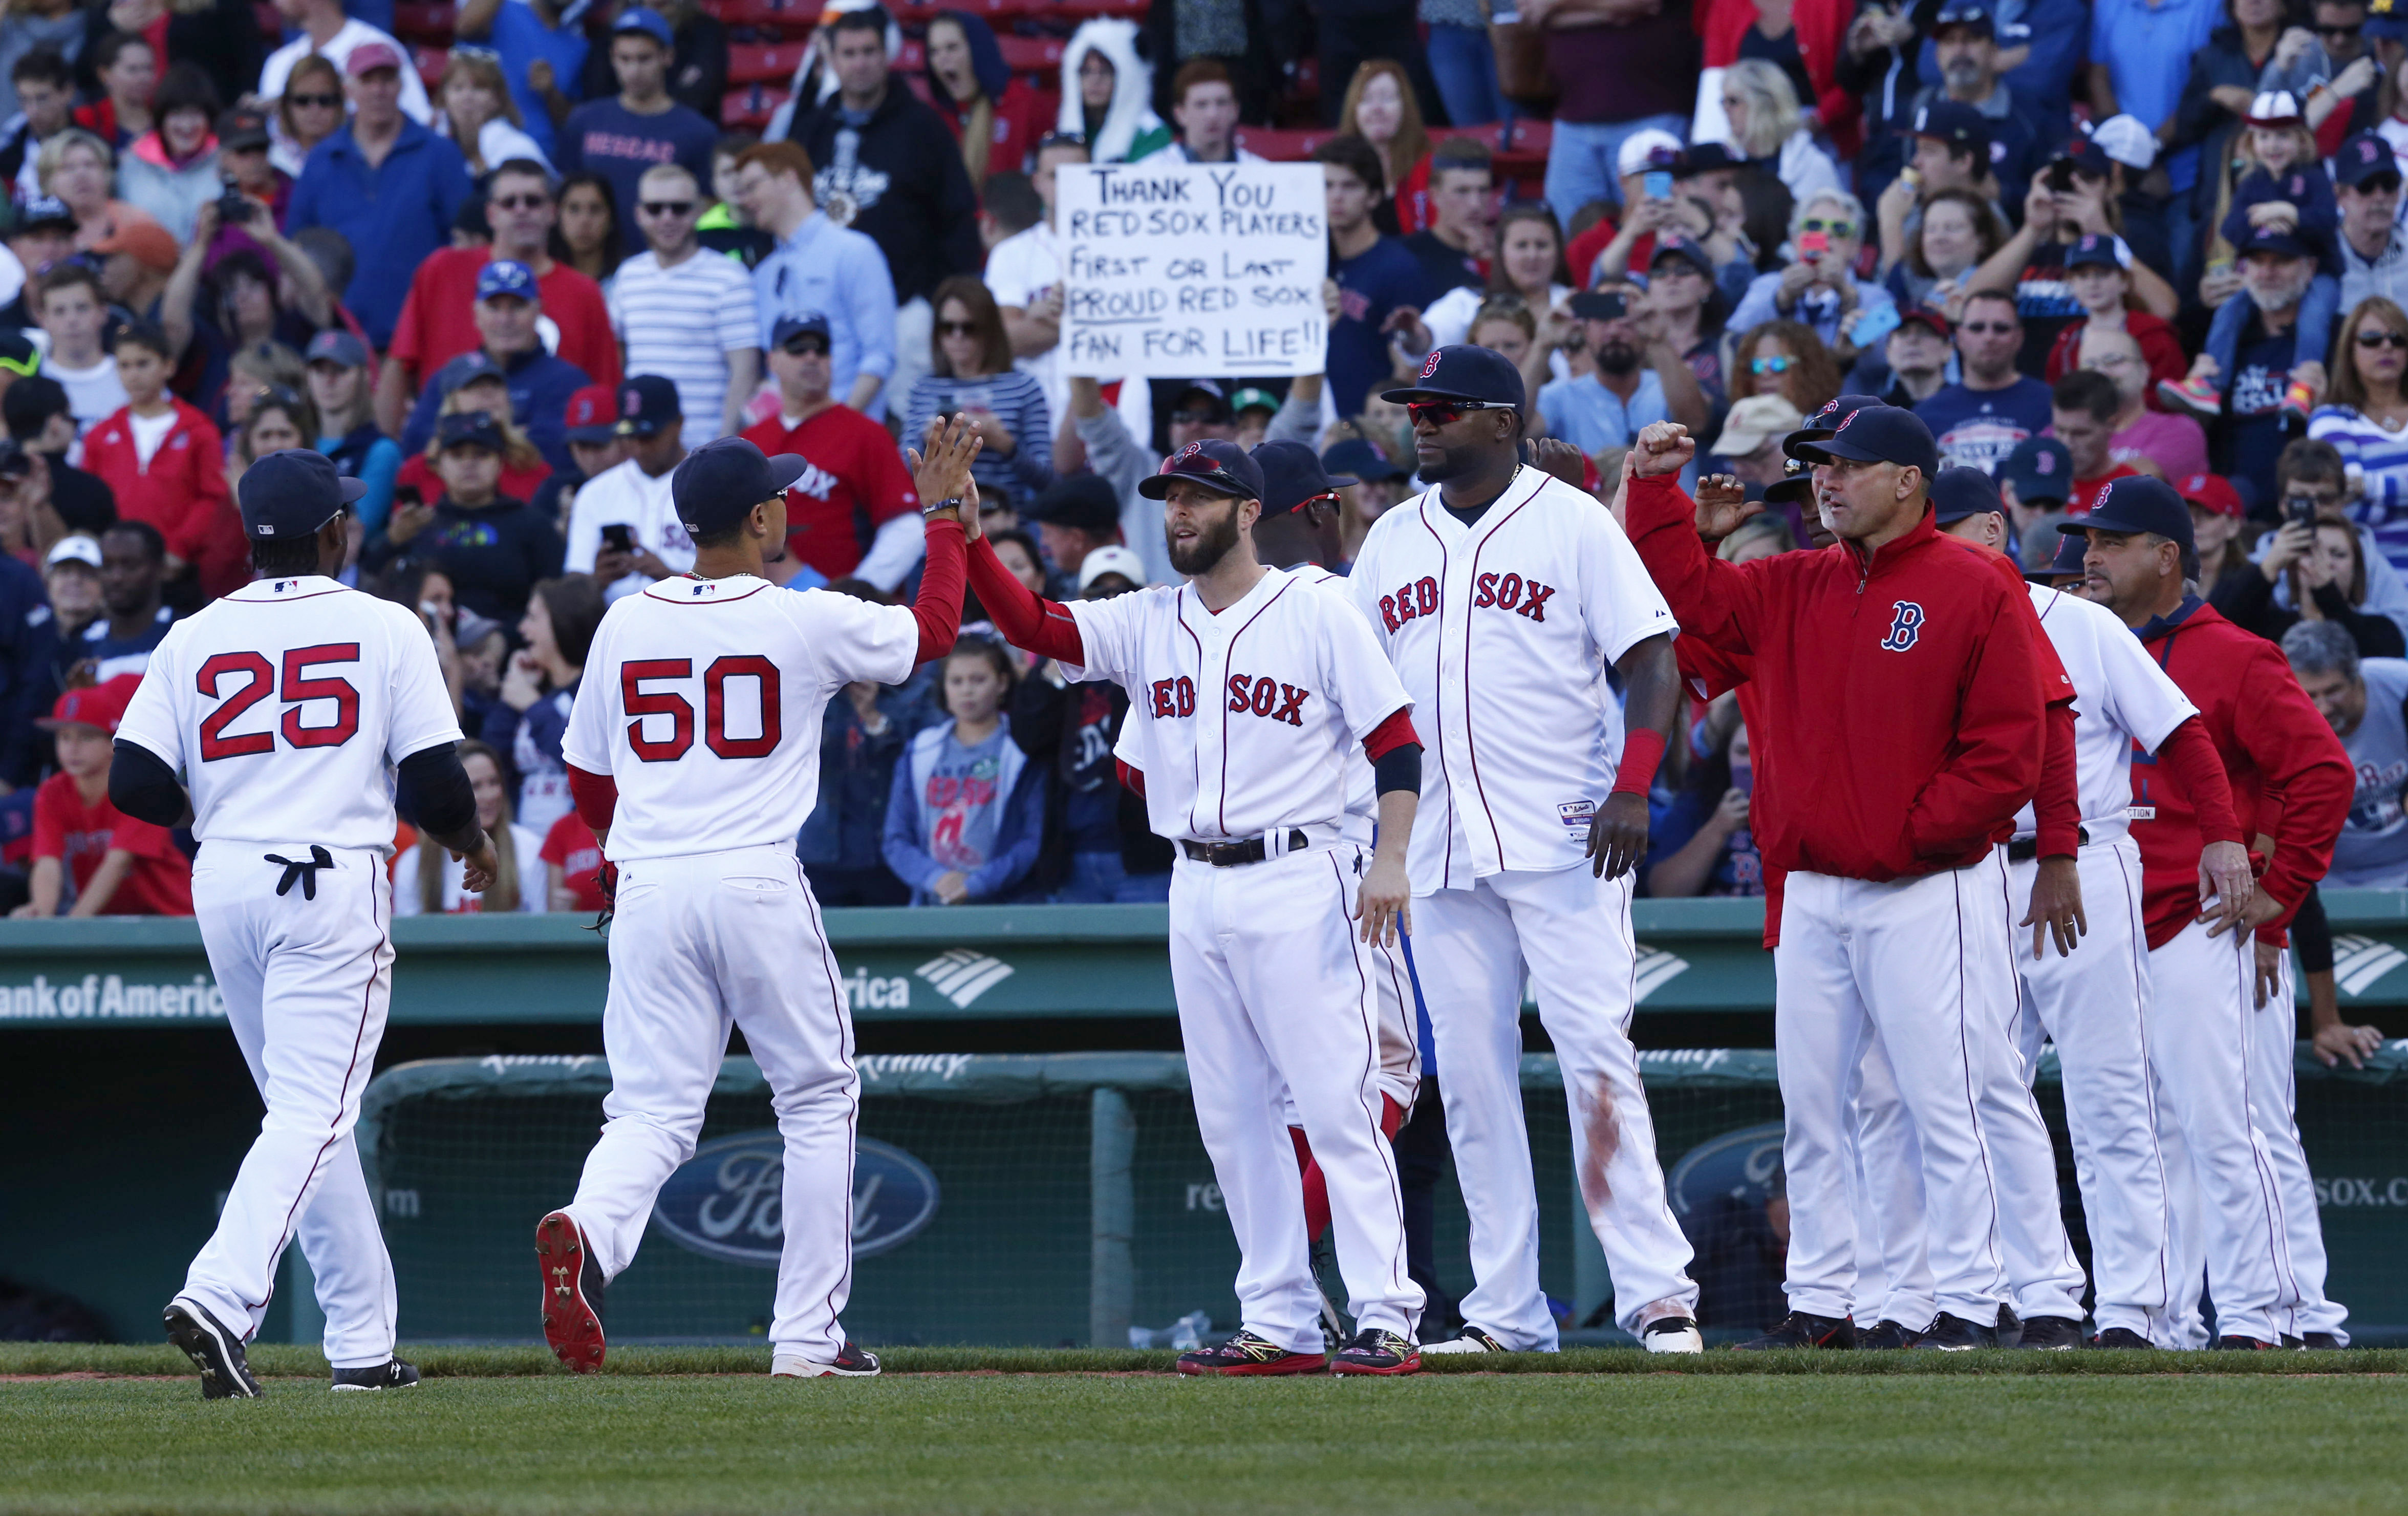 The 2015 Red Sox were disappointing, but these four guys and others still have tons of fantasy value